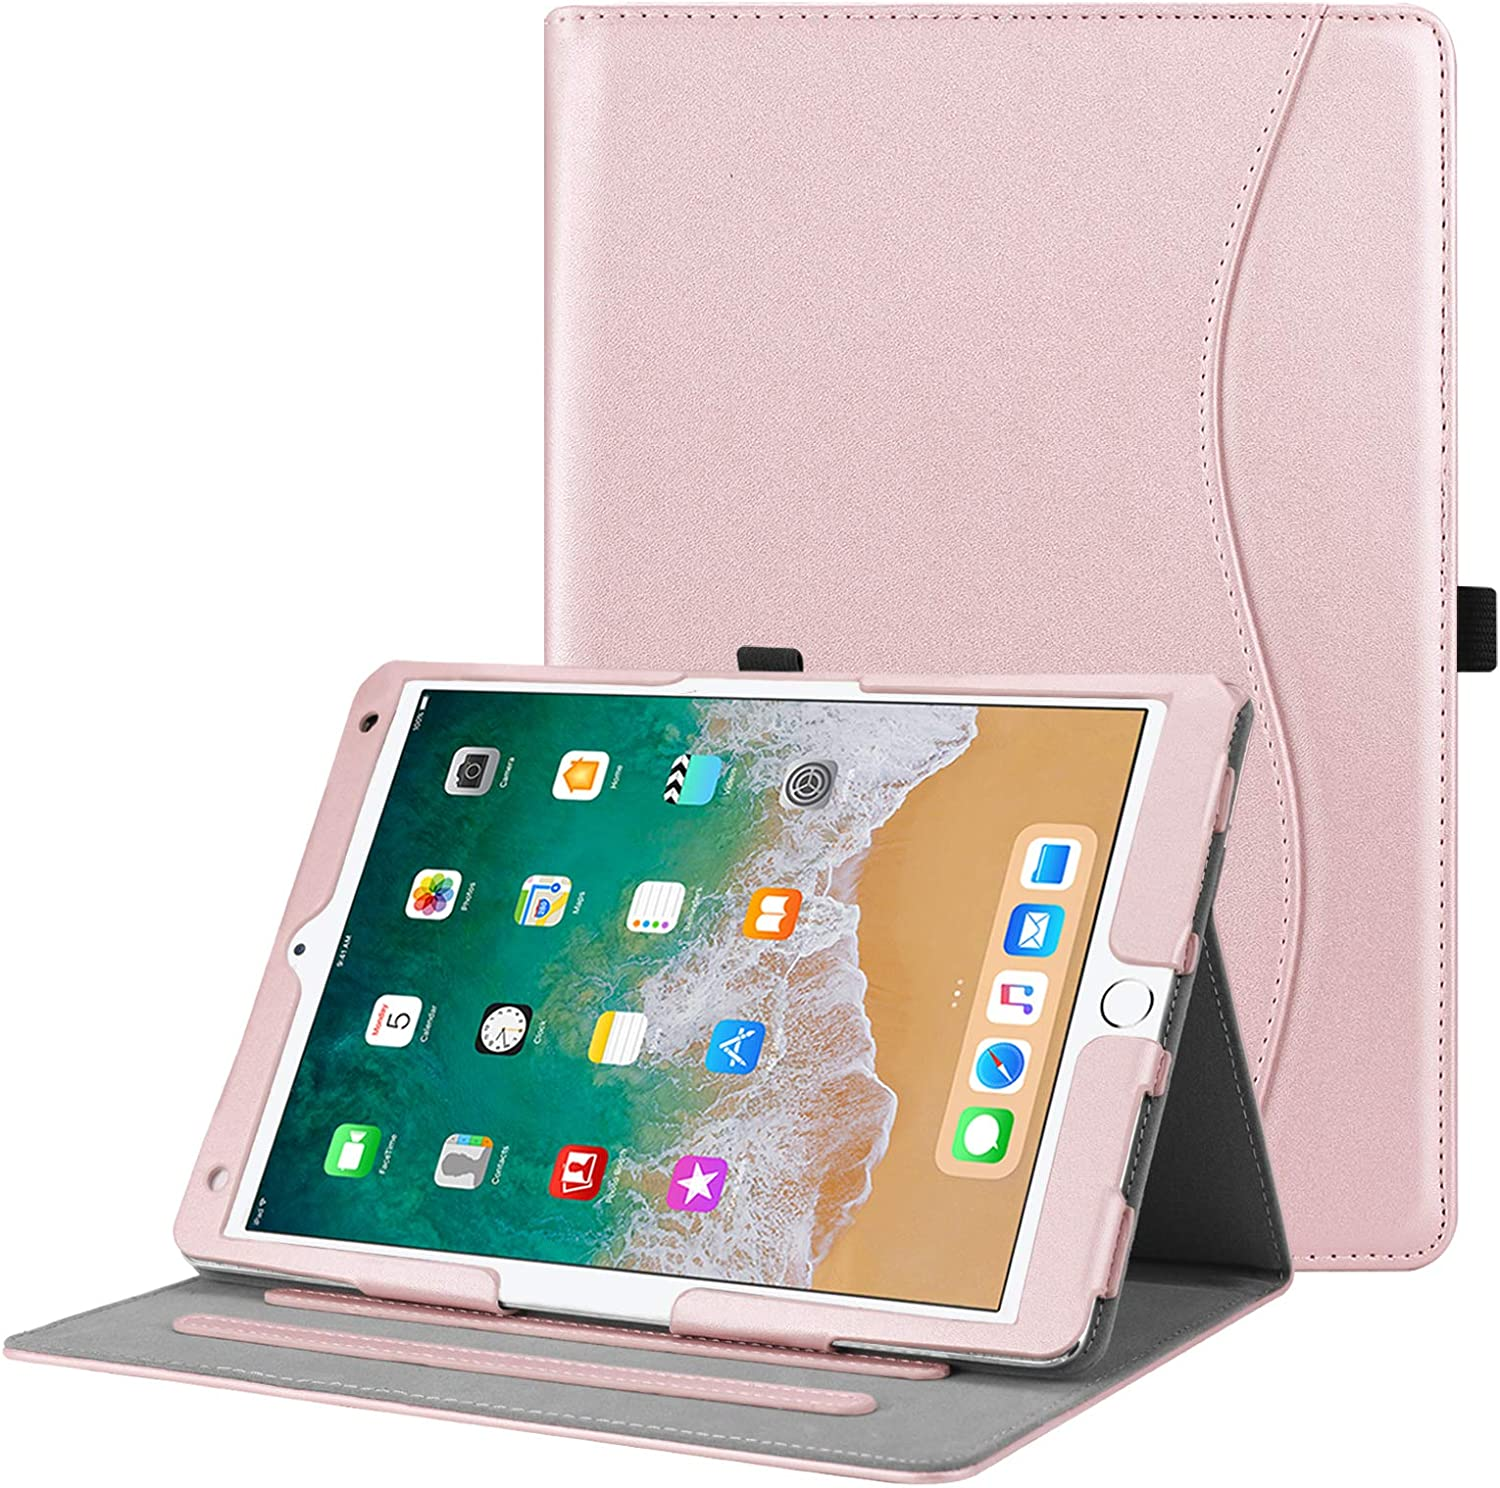 """Fintie Case for iPad Air 10.5"""" (3rd Gen) 2019 / iPad Pro 10.5"""" 2017 - [Corner Protection] Multi-Angle Viewing Folio Stand Cover with Pocket, Pencil Holder, Auto Wake/Sleep, Rose Gold"""